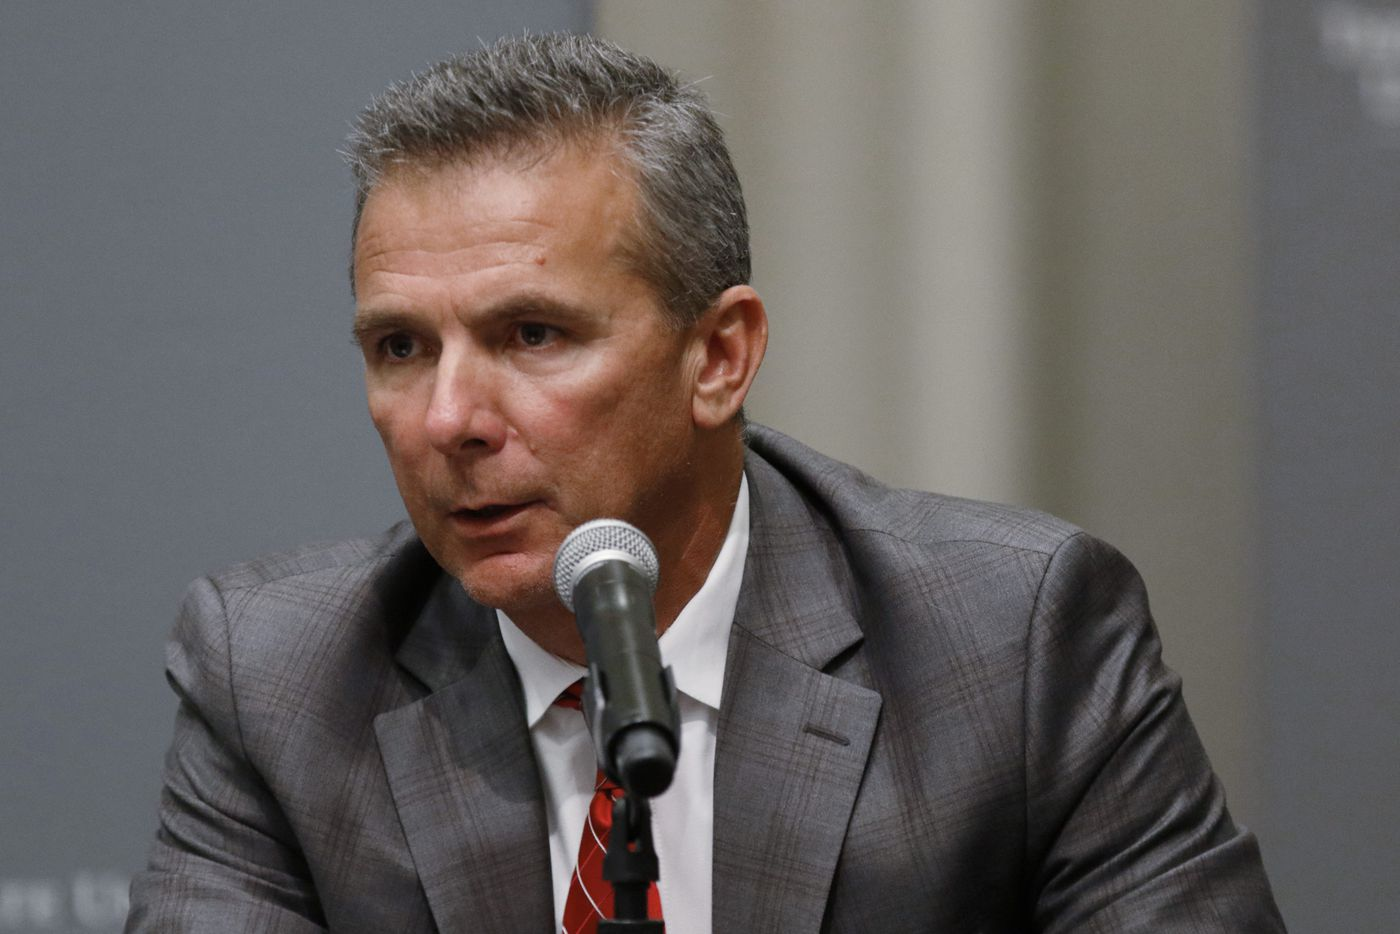 Urban Meyer and Ohio State should have acted on domestic violence accusations, not hidden them   Mike Jensen